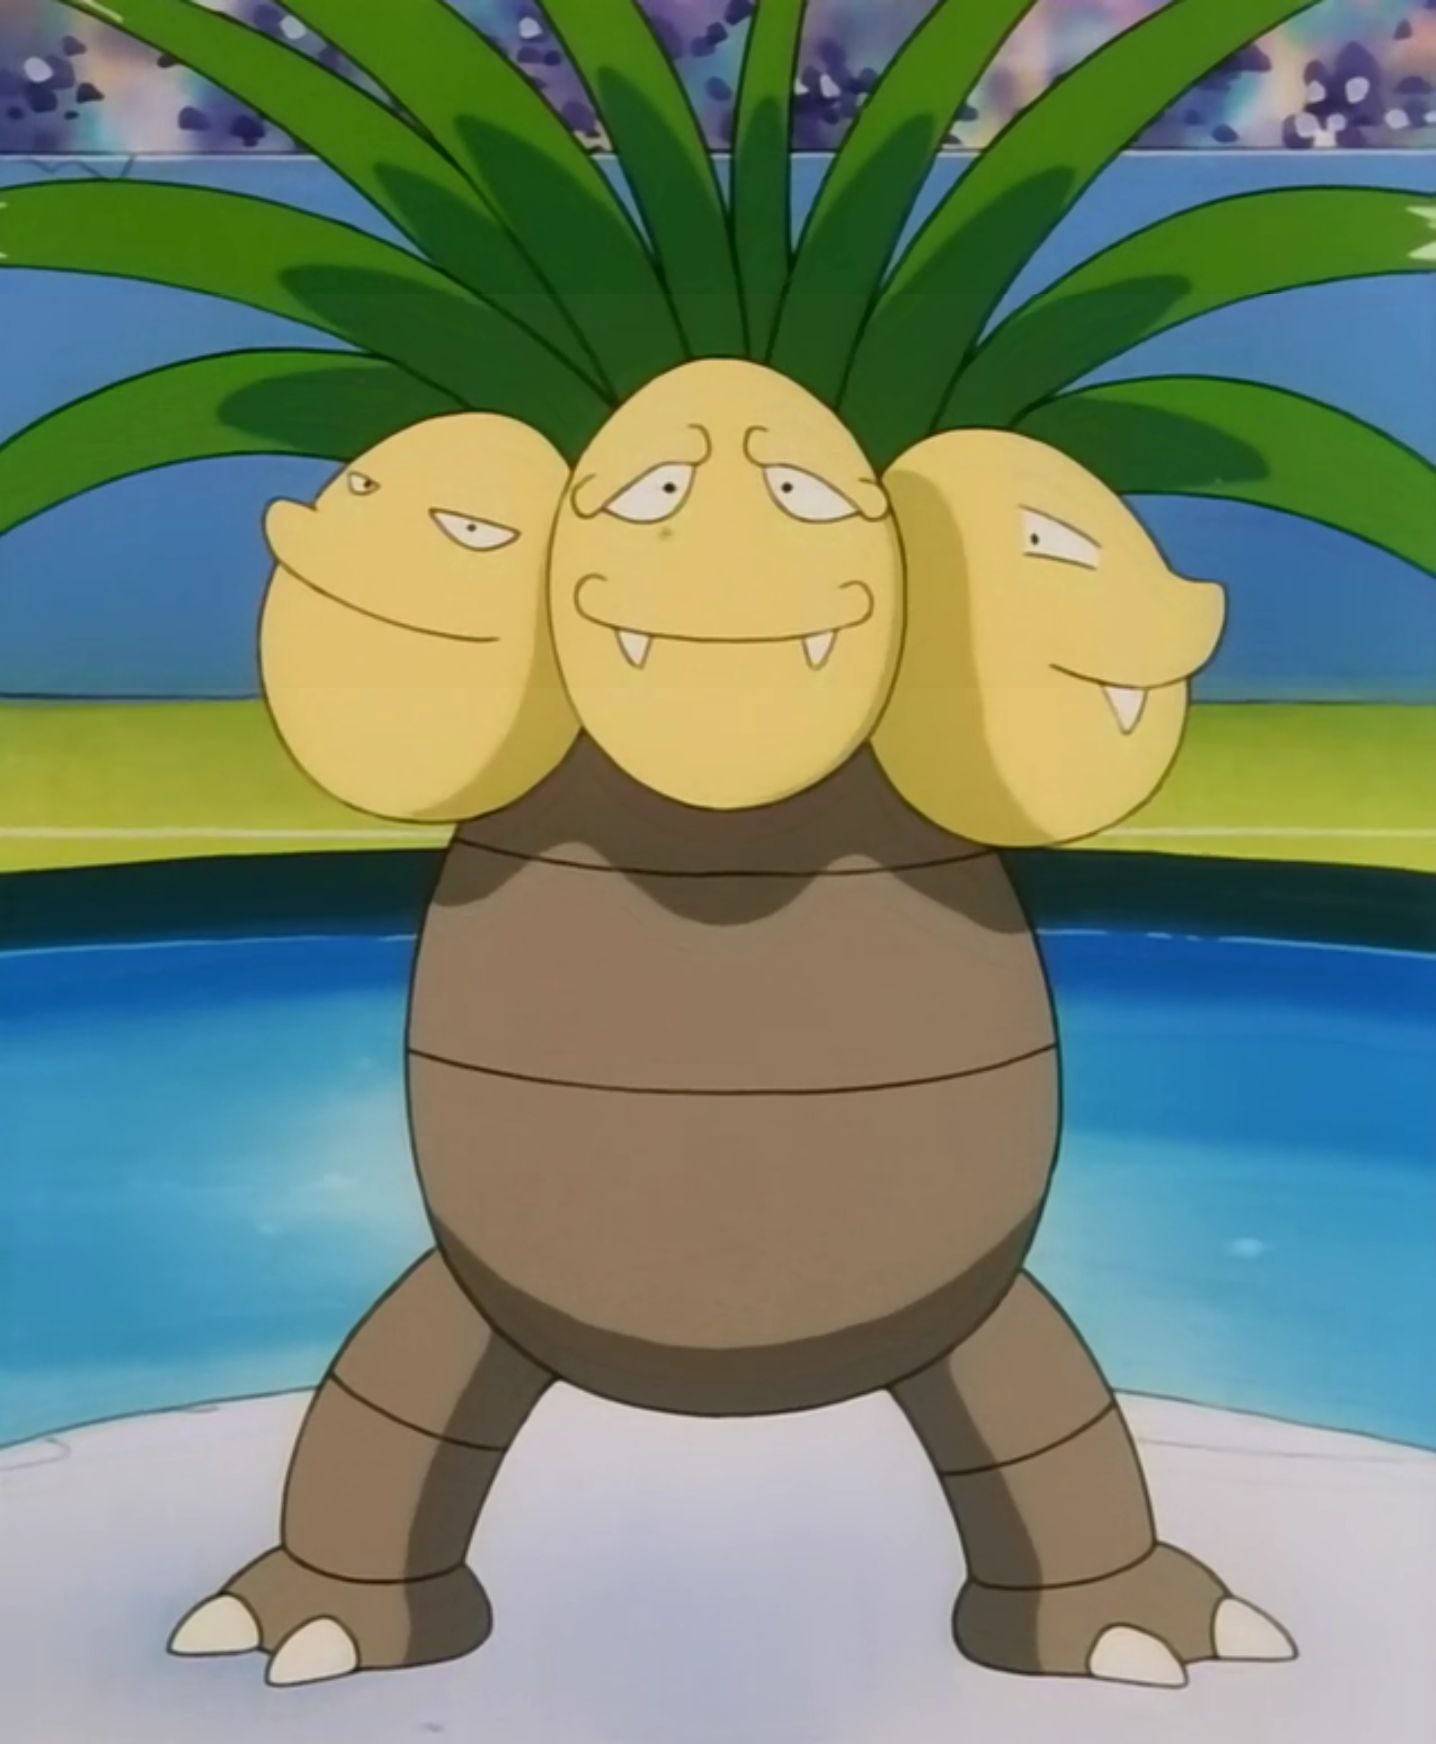 Exeggutor was the first Pokémon Mandi used against Ash. Though powerful, it lost to Ash's Krabby, which evolved into Kingler.